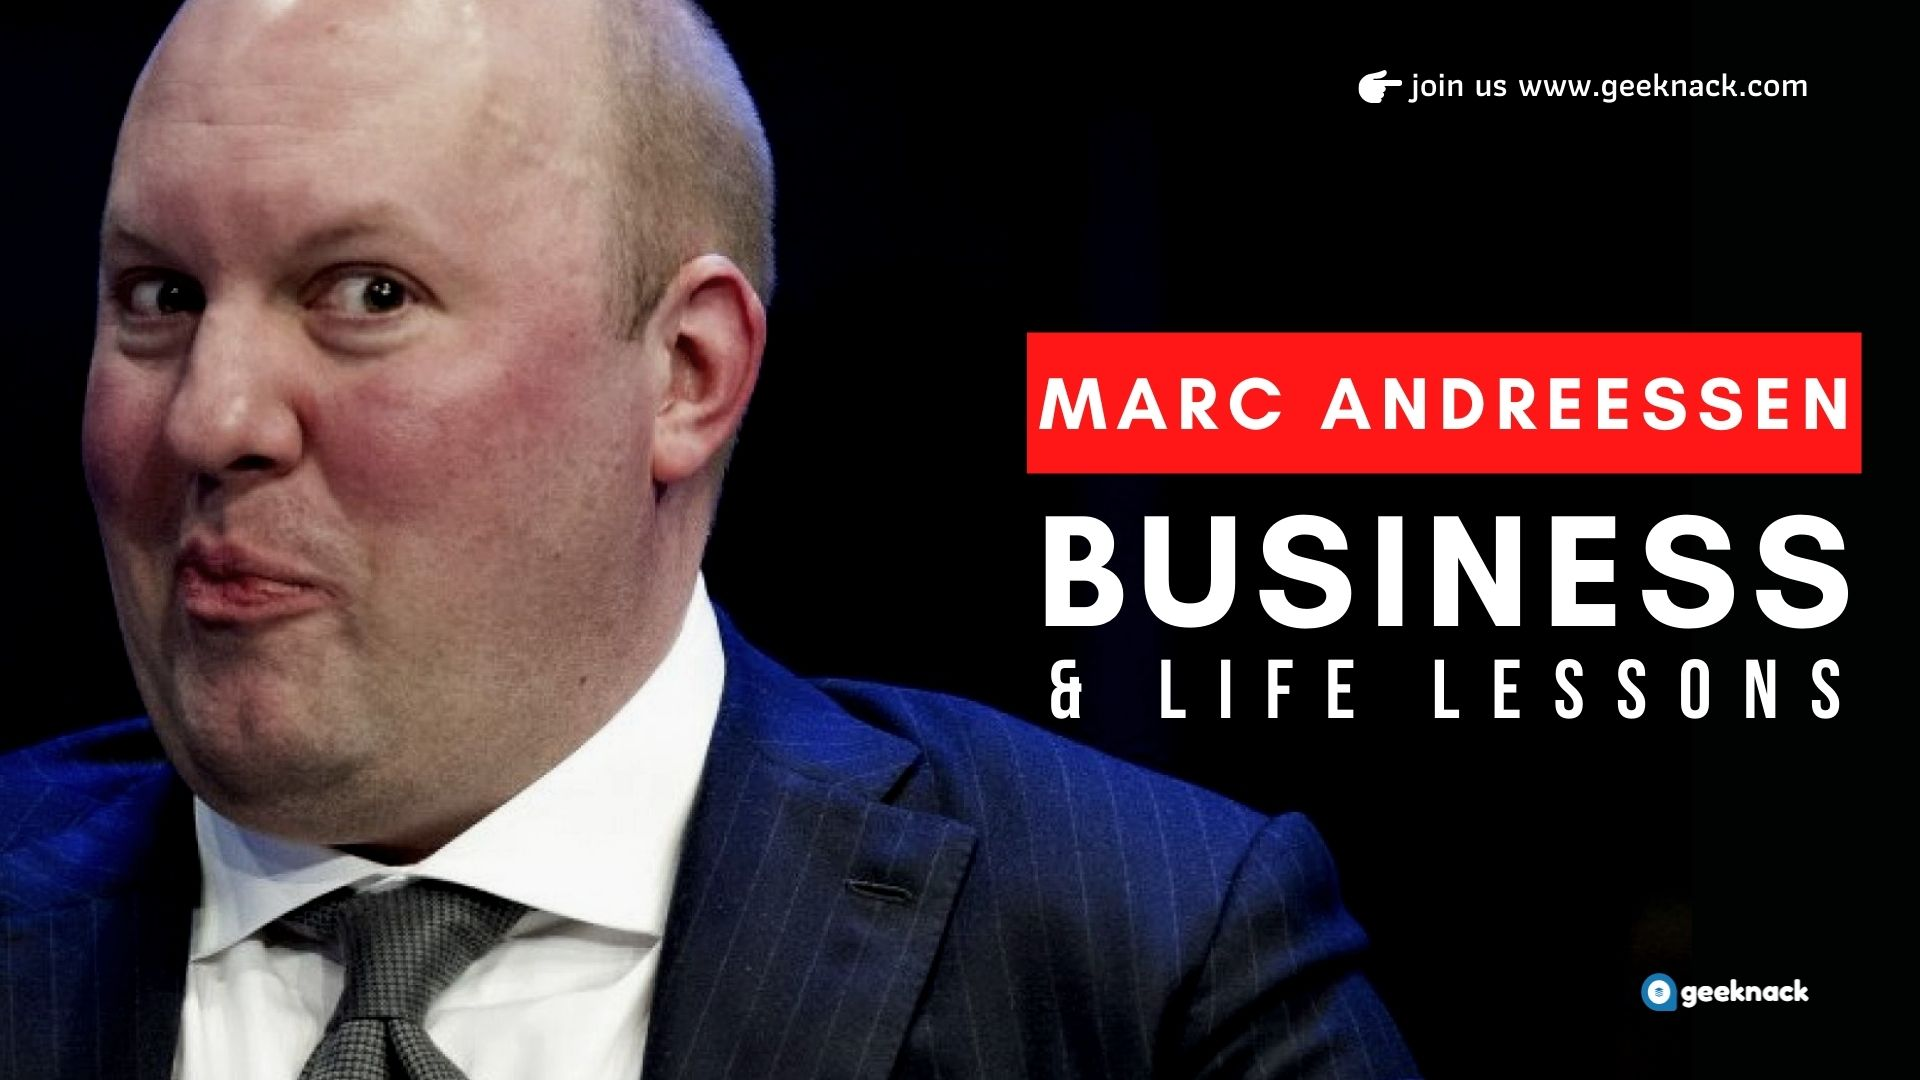 Marc Andreessen Business Life Lessons cover